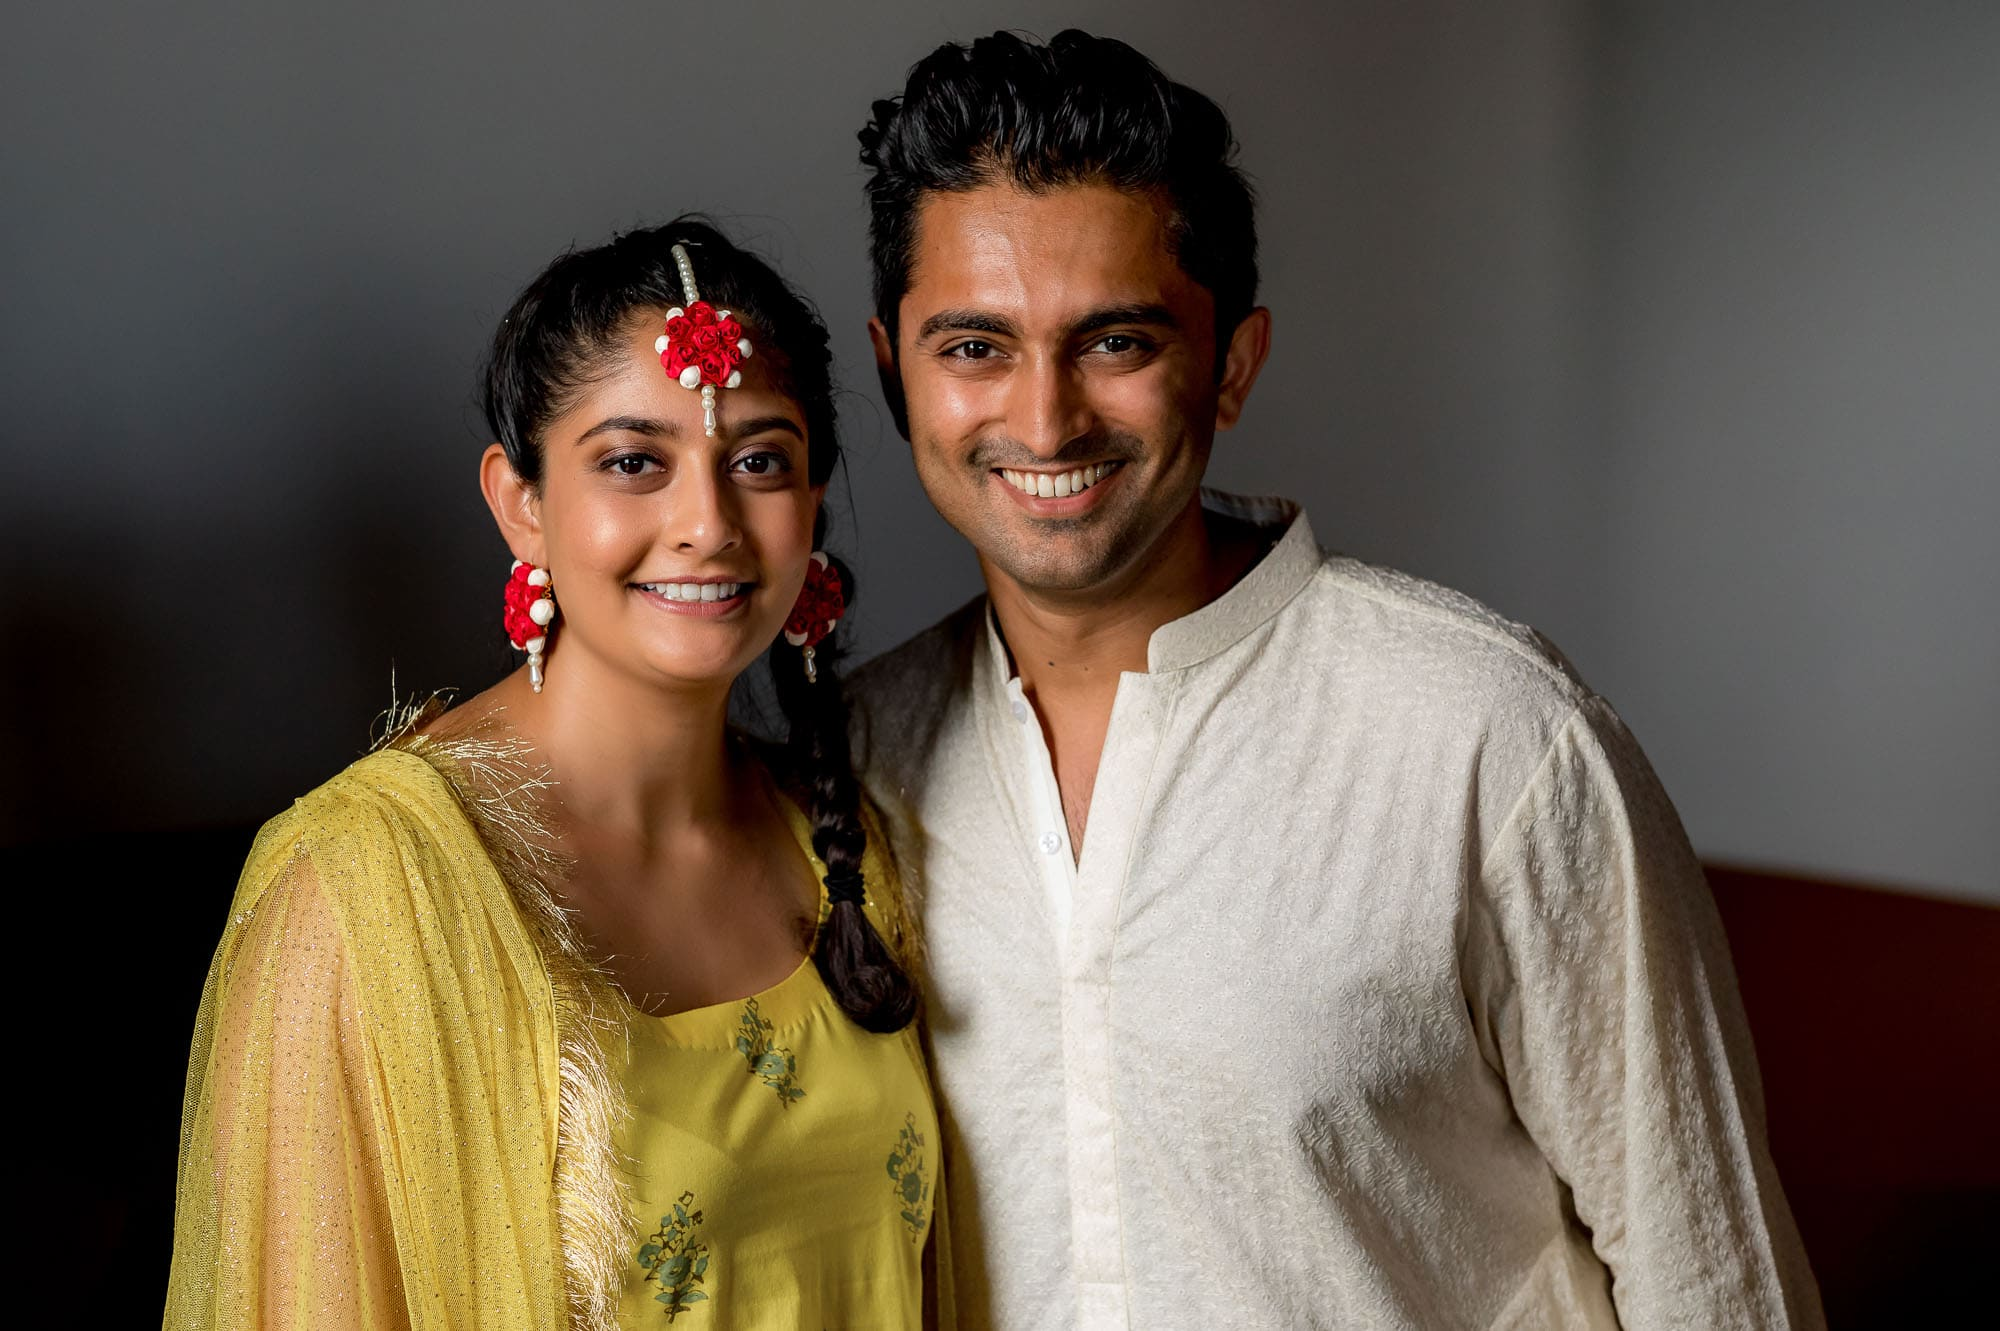 Smiling posed shot of the bride and groom before the Pithi ceremony